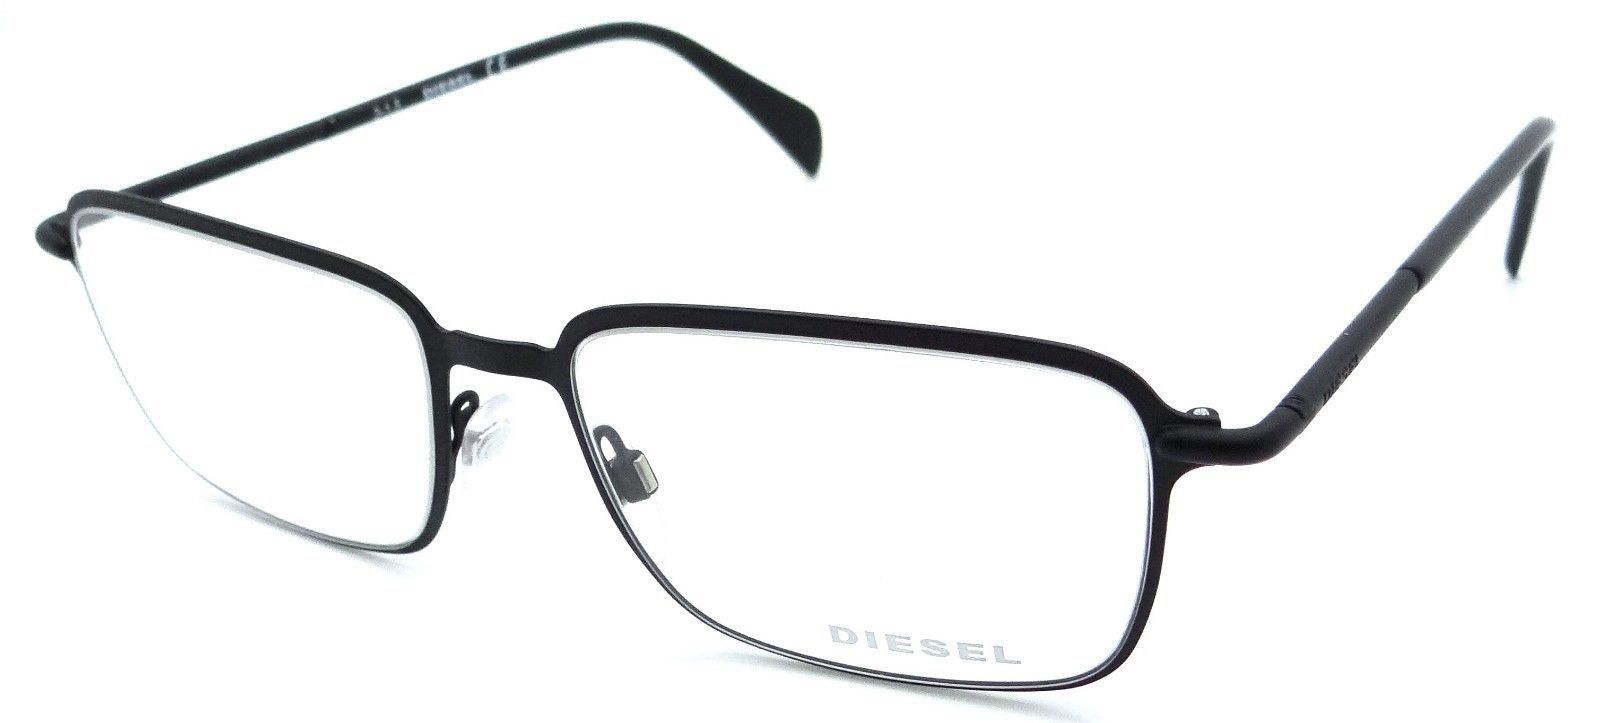 6b33fd2d5c New Authentic Diesel Rx Eyeglasses Frames and 50 similar items. 57